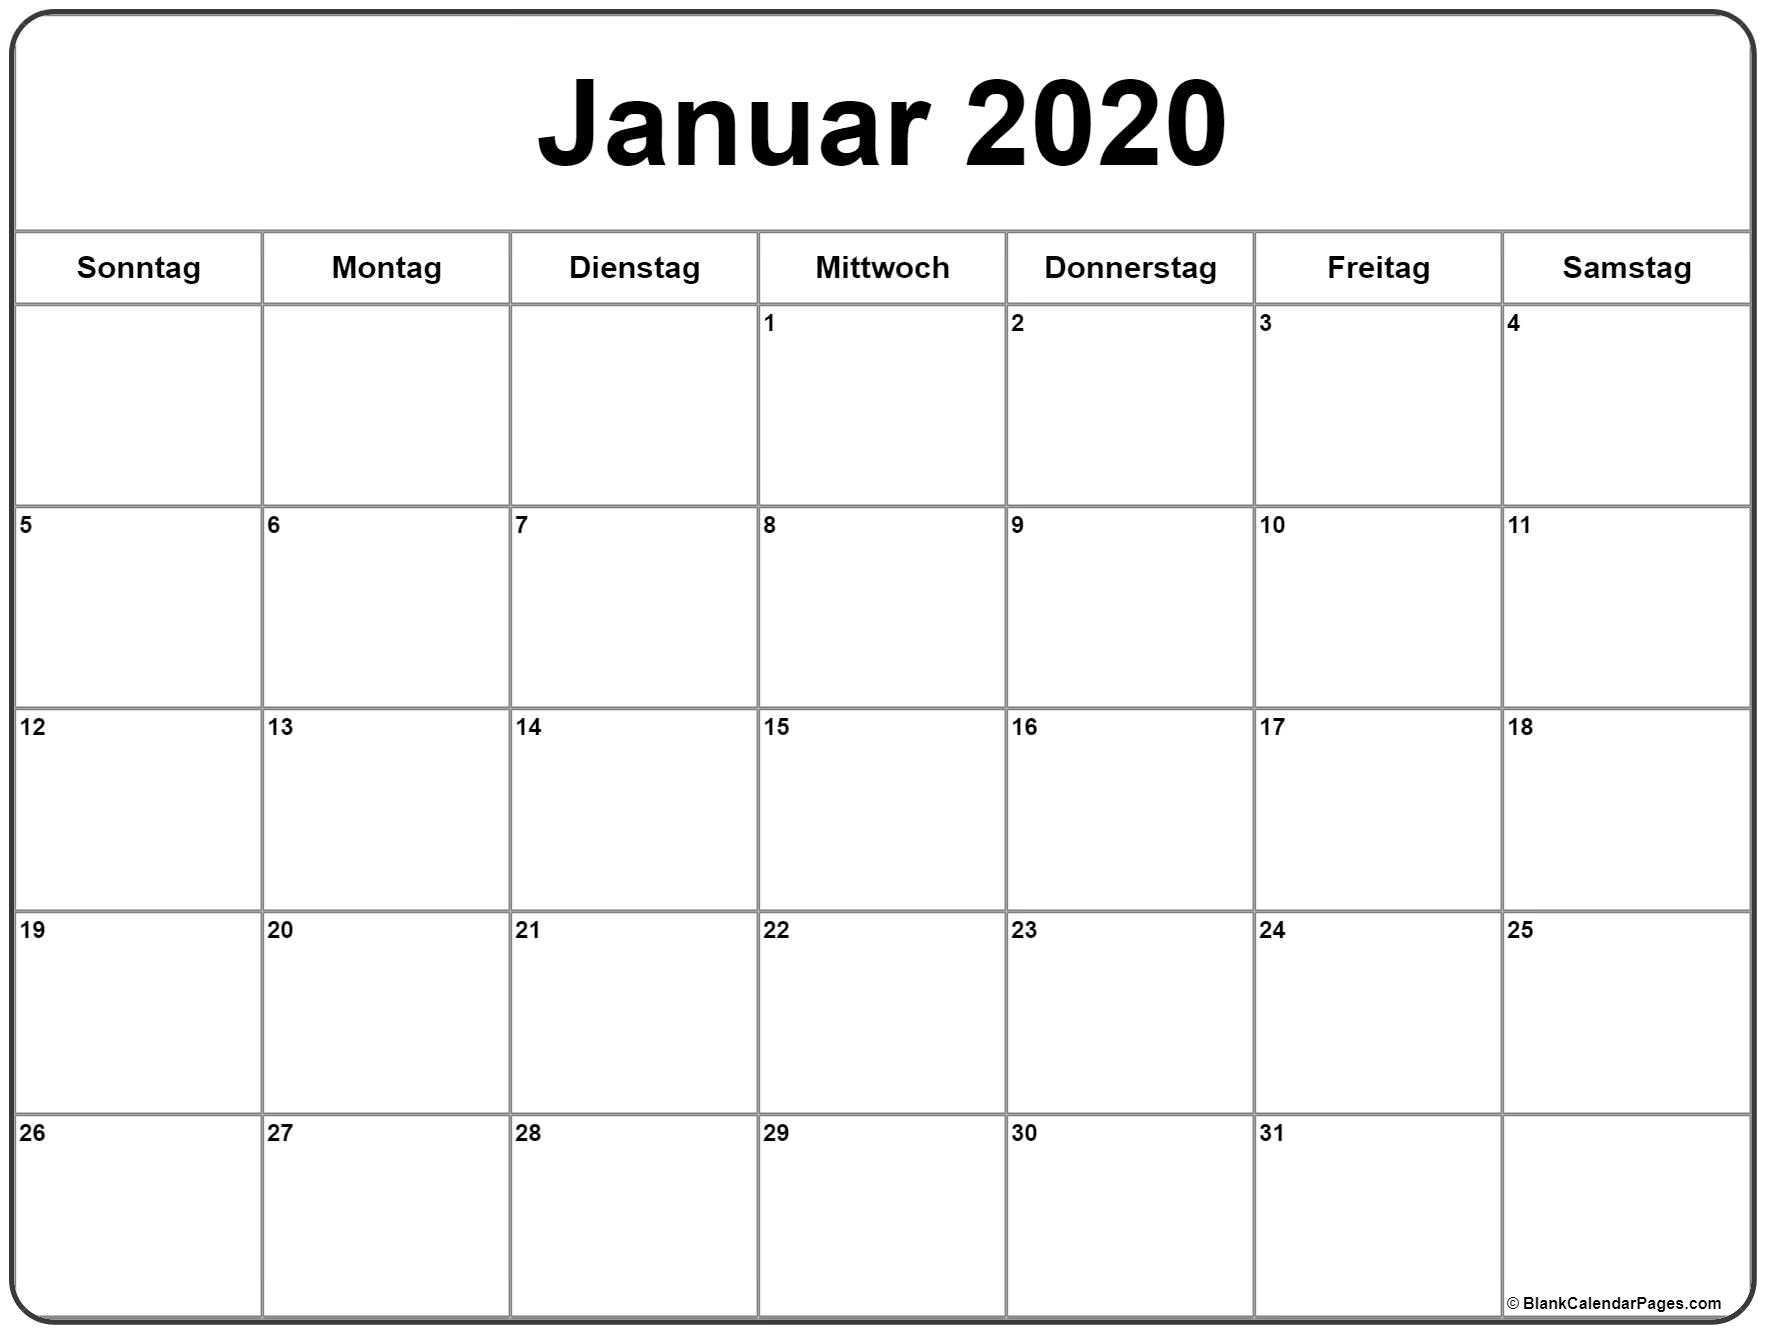 Kalender November Dezember 2020 Januar Februar Marz April 2021